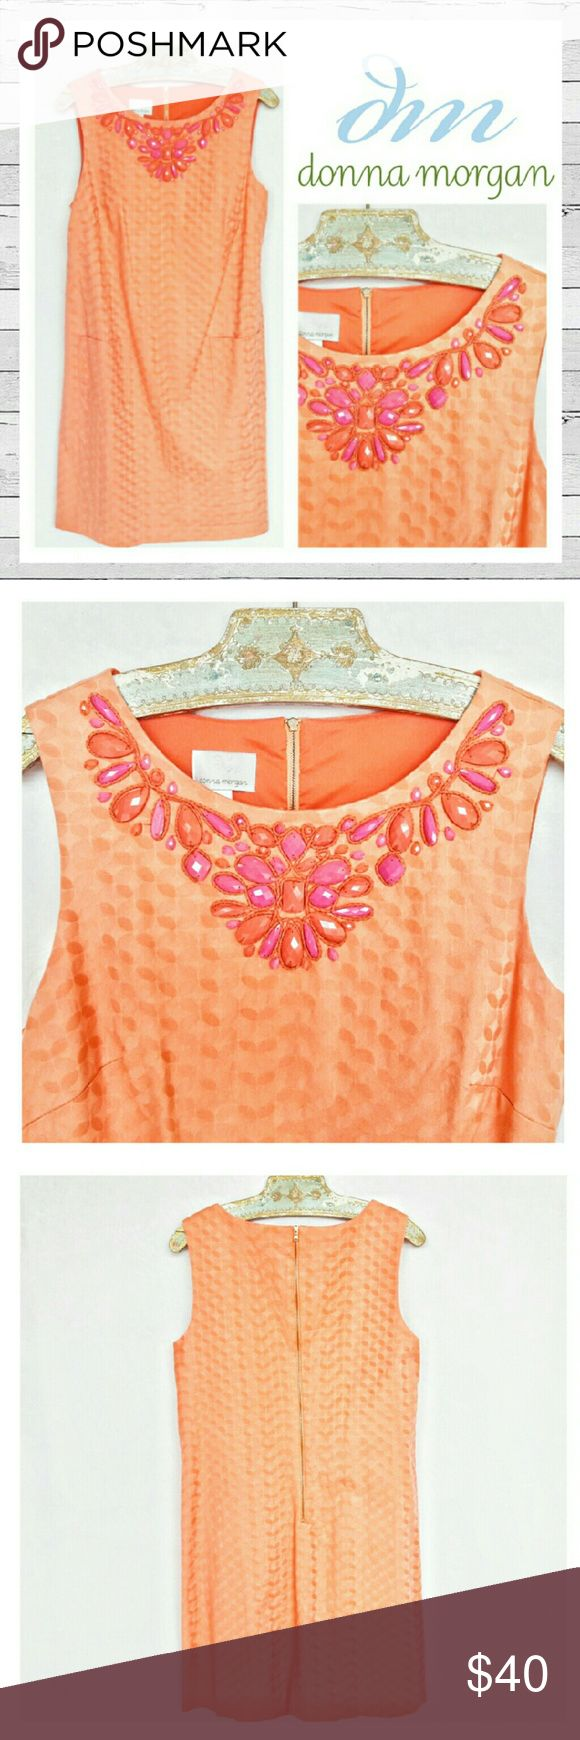 Donna Morgan Embellished Shift Dress Sz 12 Fabulous shoft by Donna Morgan. Pretty peach and coral colors. Back zipper. Excellent previously loved condition. Sorry no trades. Donna Morgan Dresses Midi